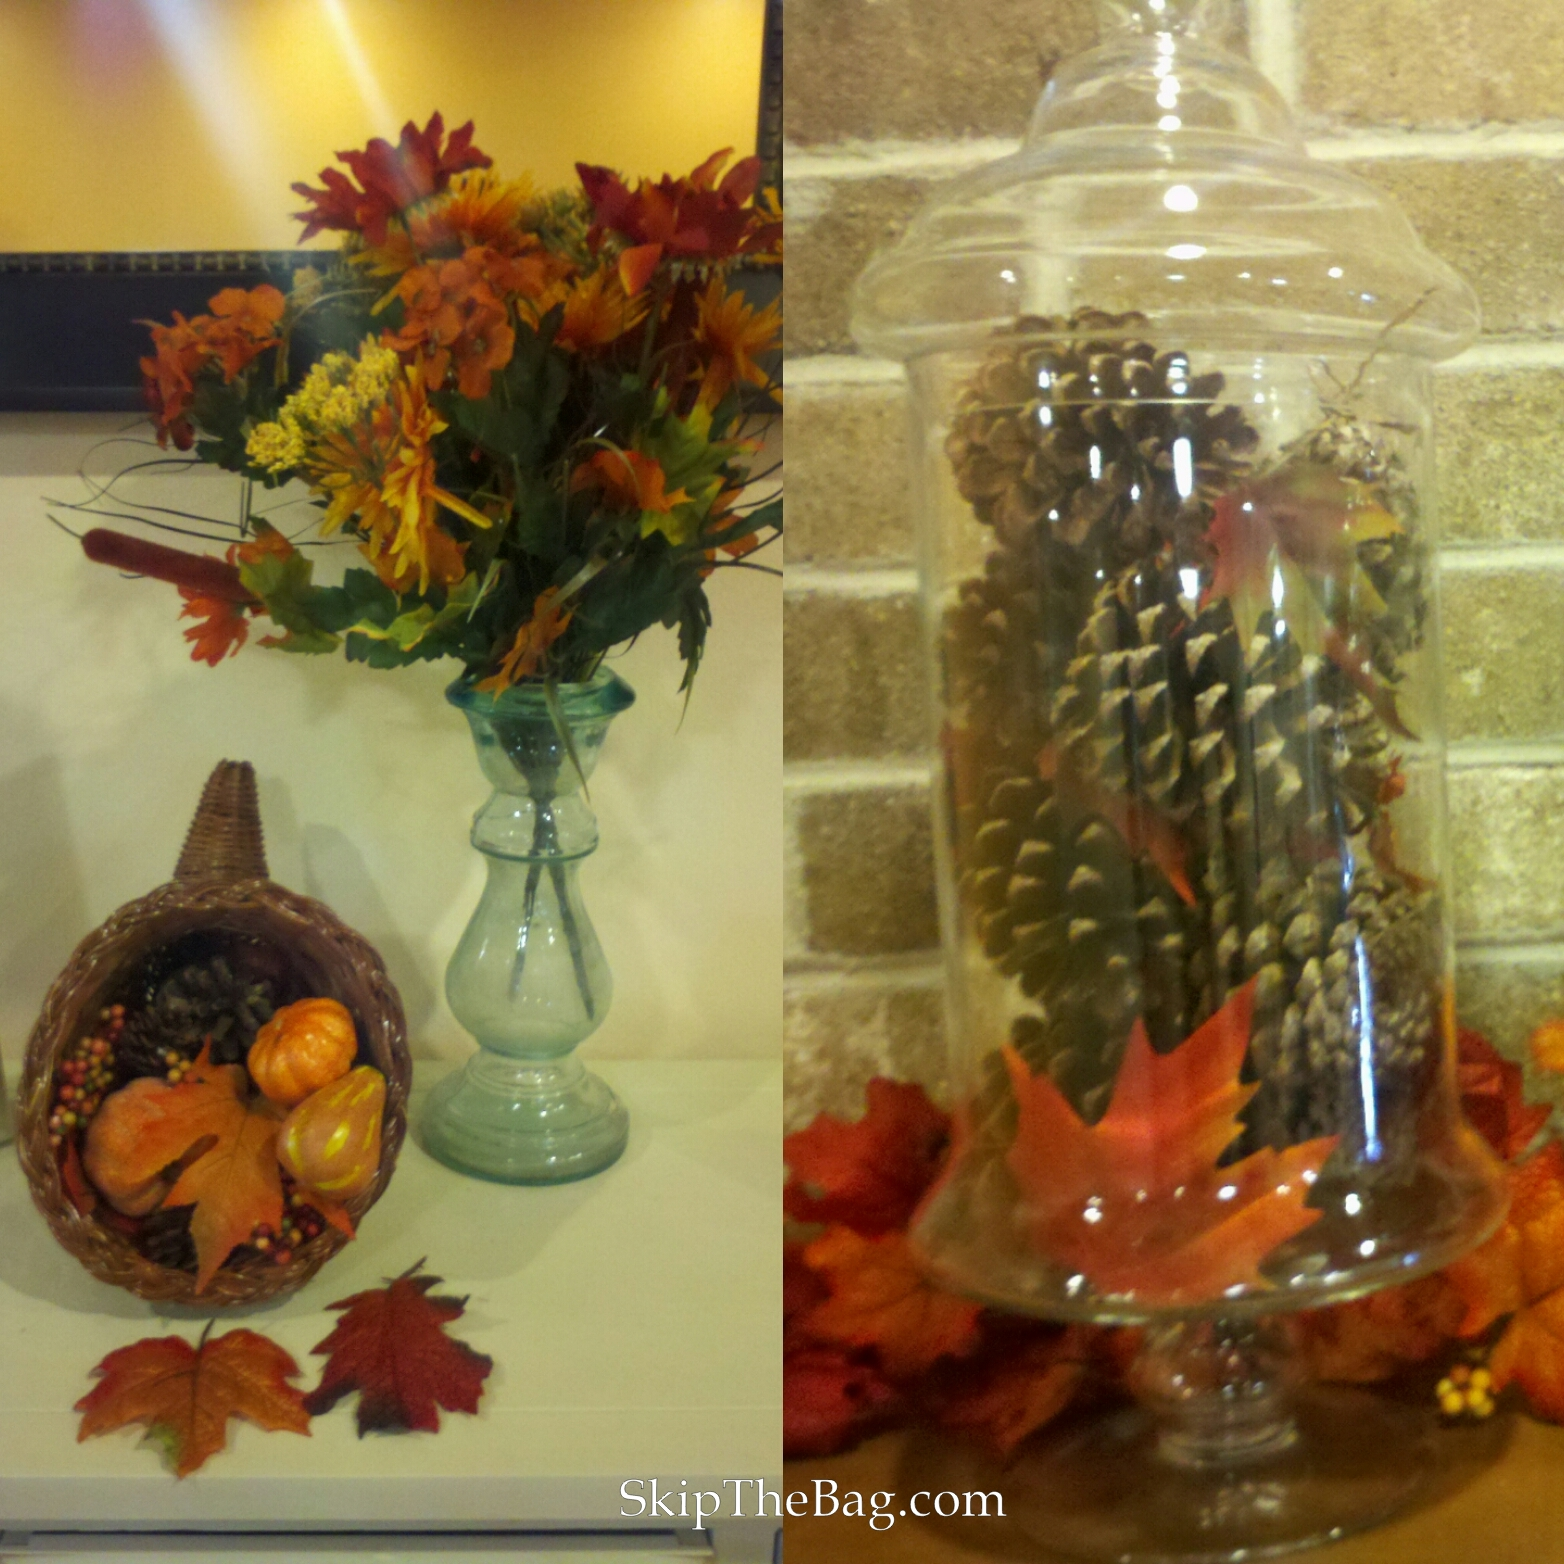 Skip the bag zero waste halloween ideas for Decoration ideas from waste